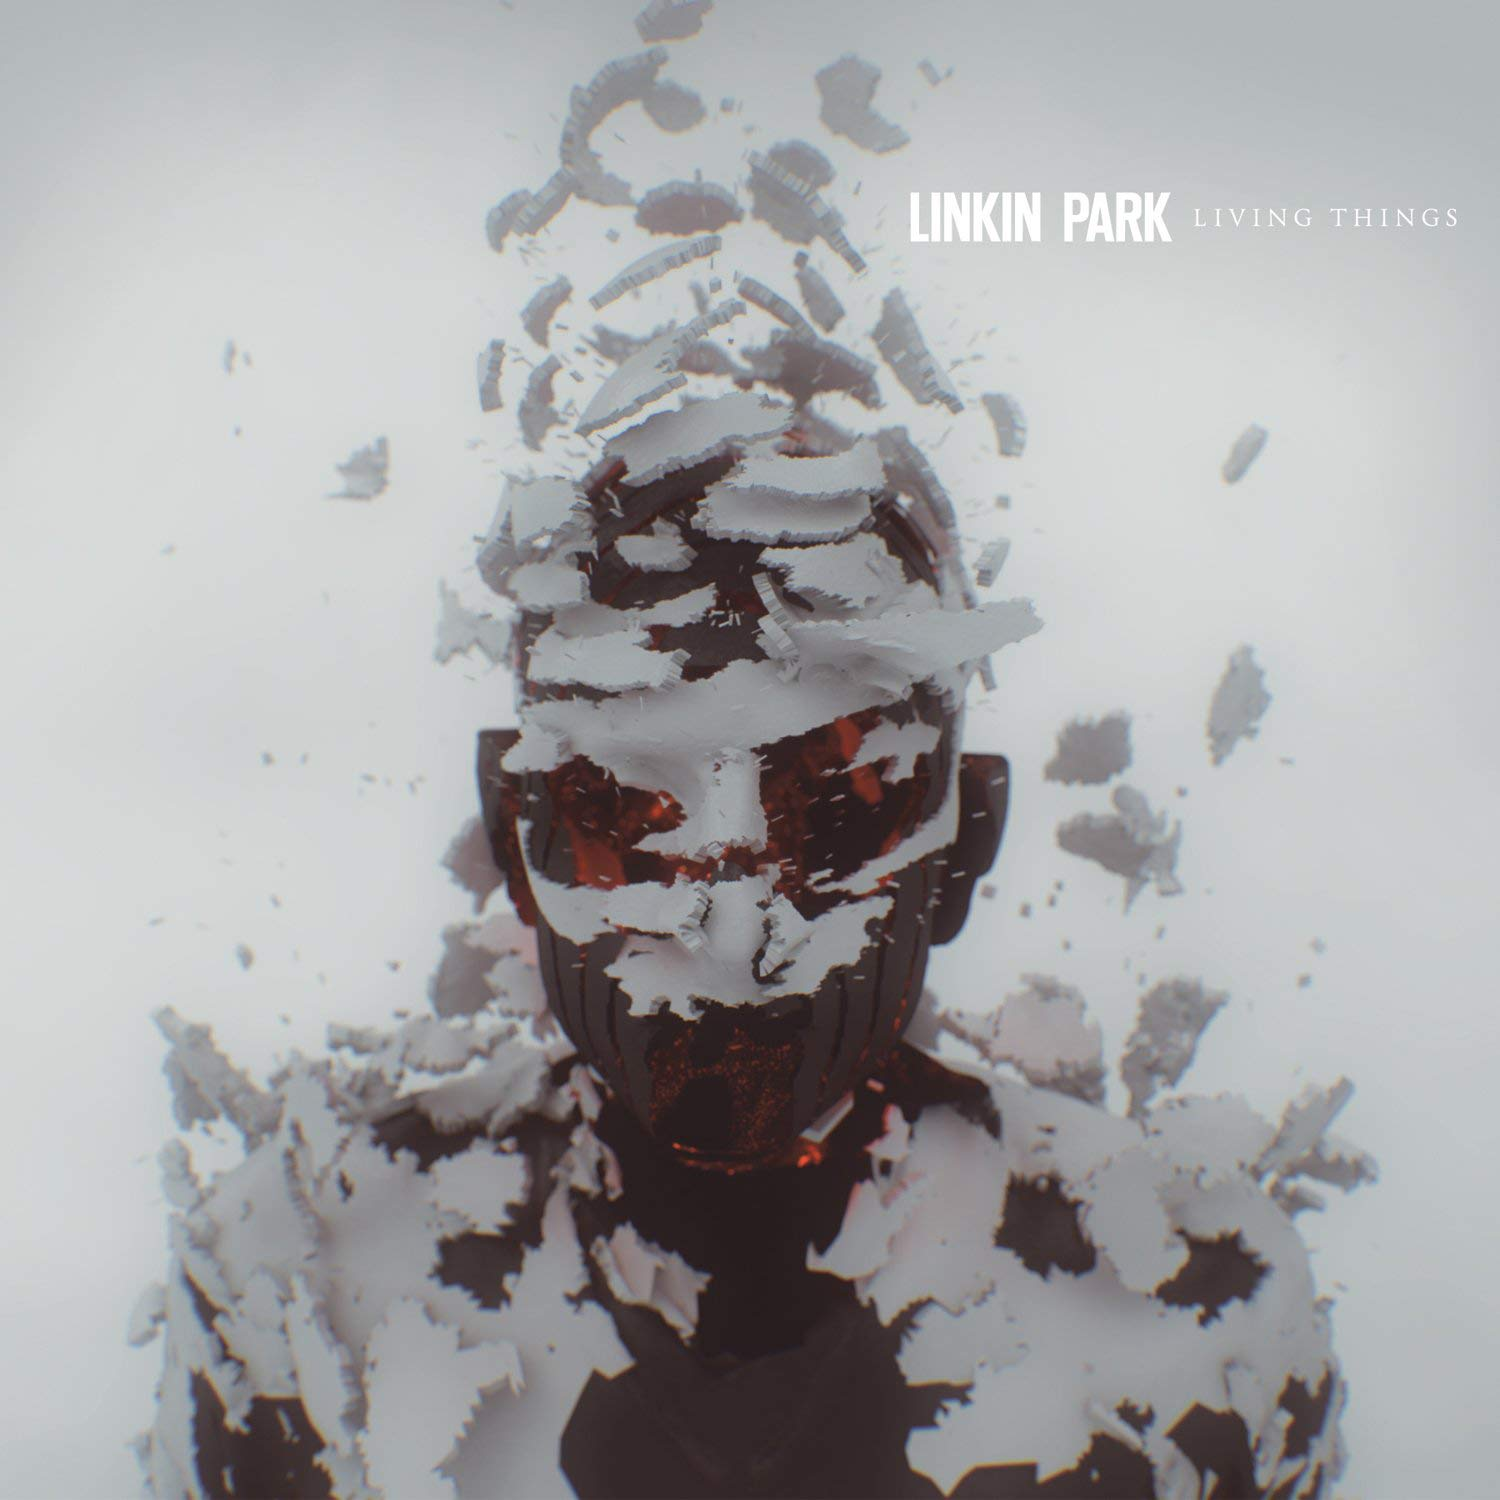 Download Linkin Park - Living Things (2012) Full Album MP3